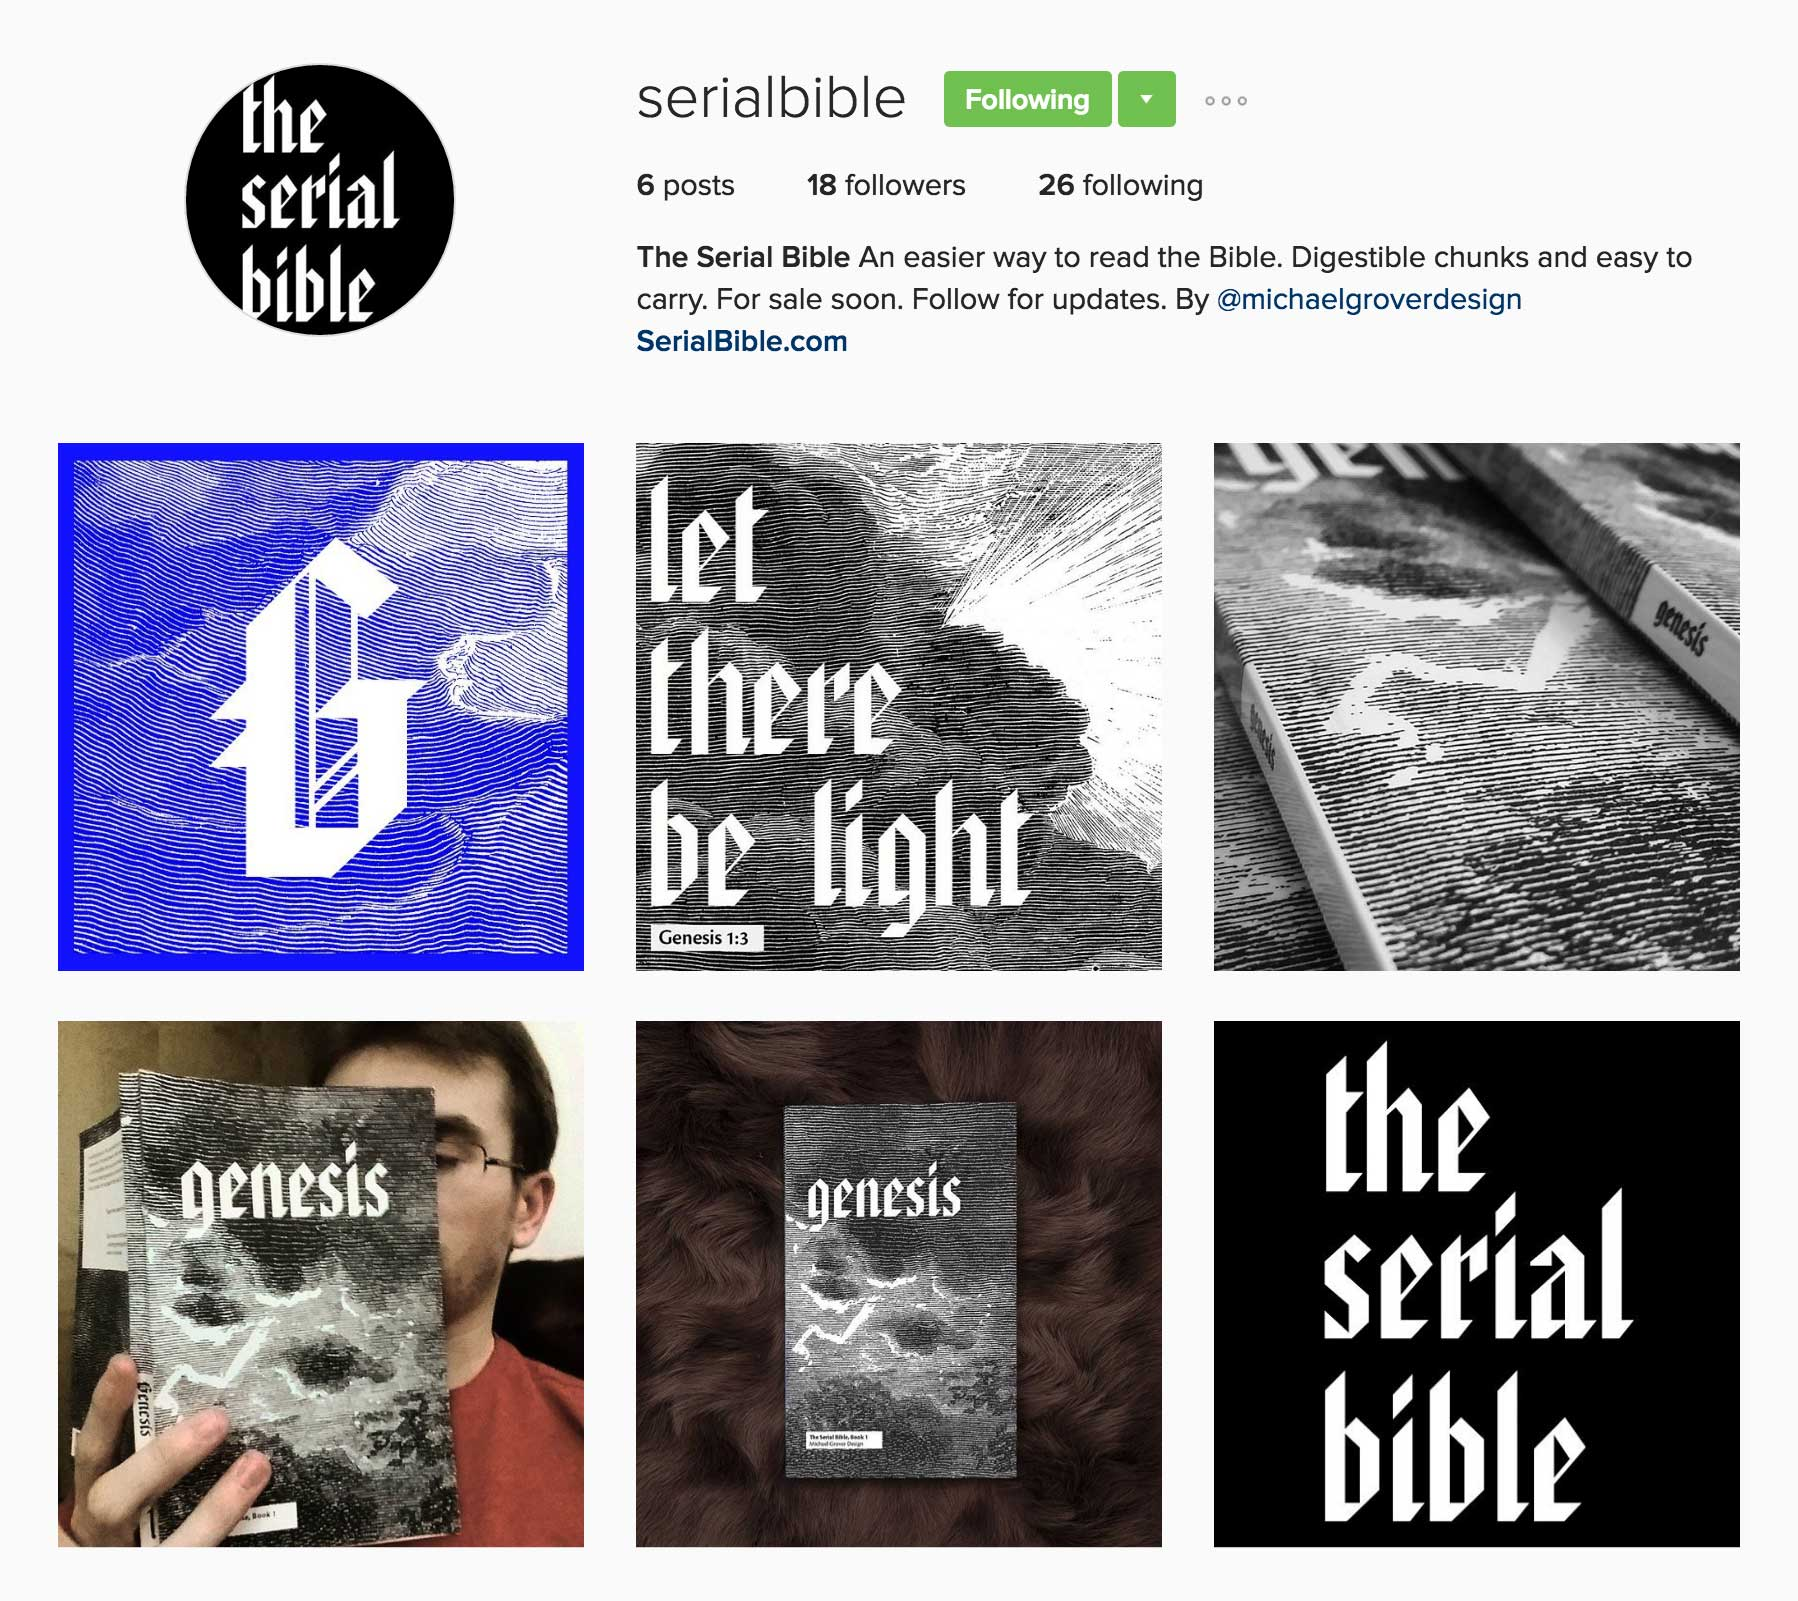 Maintaining an Instagram to drum up interest.  @serialbible